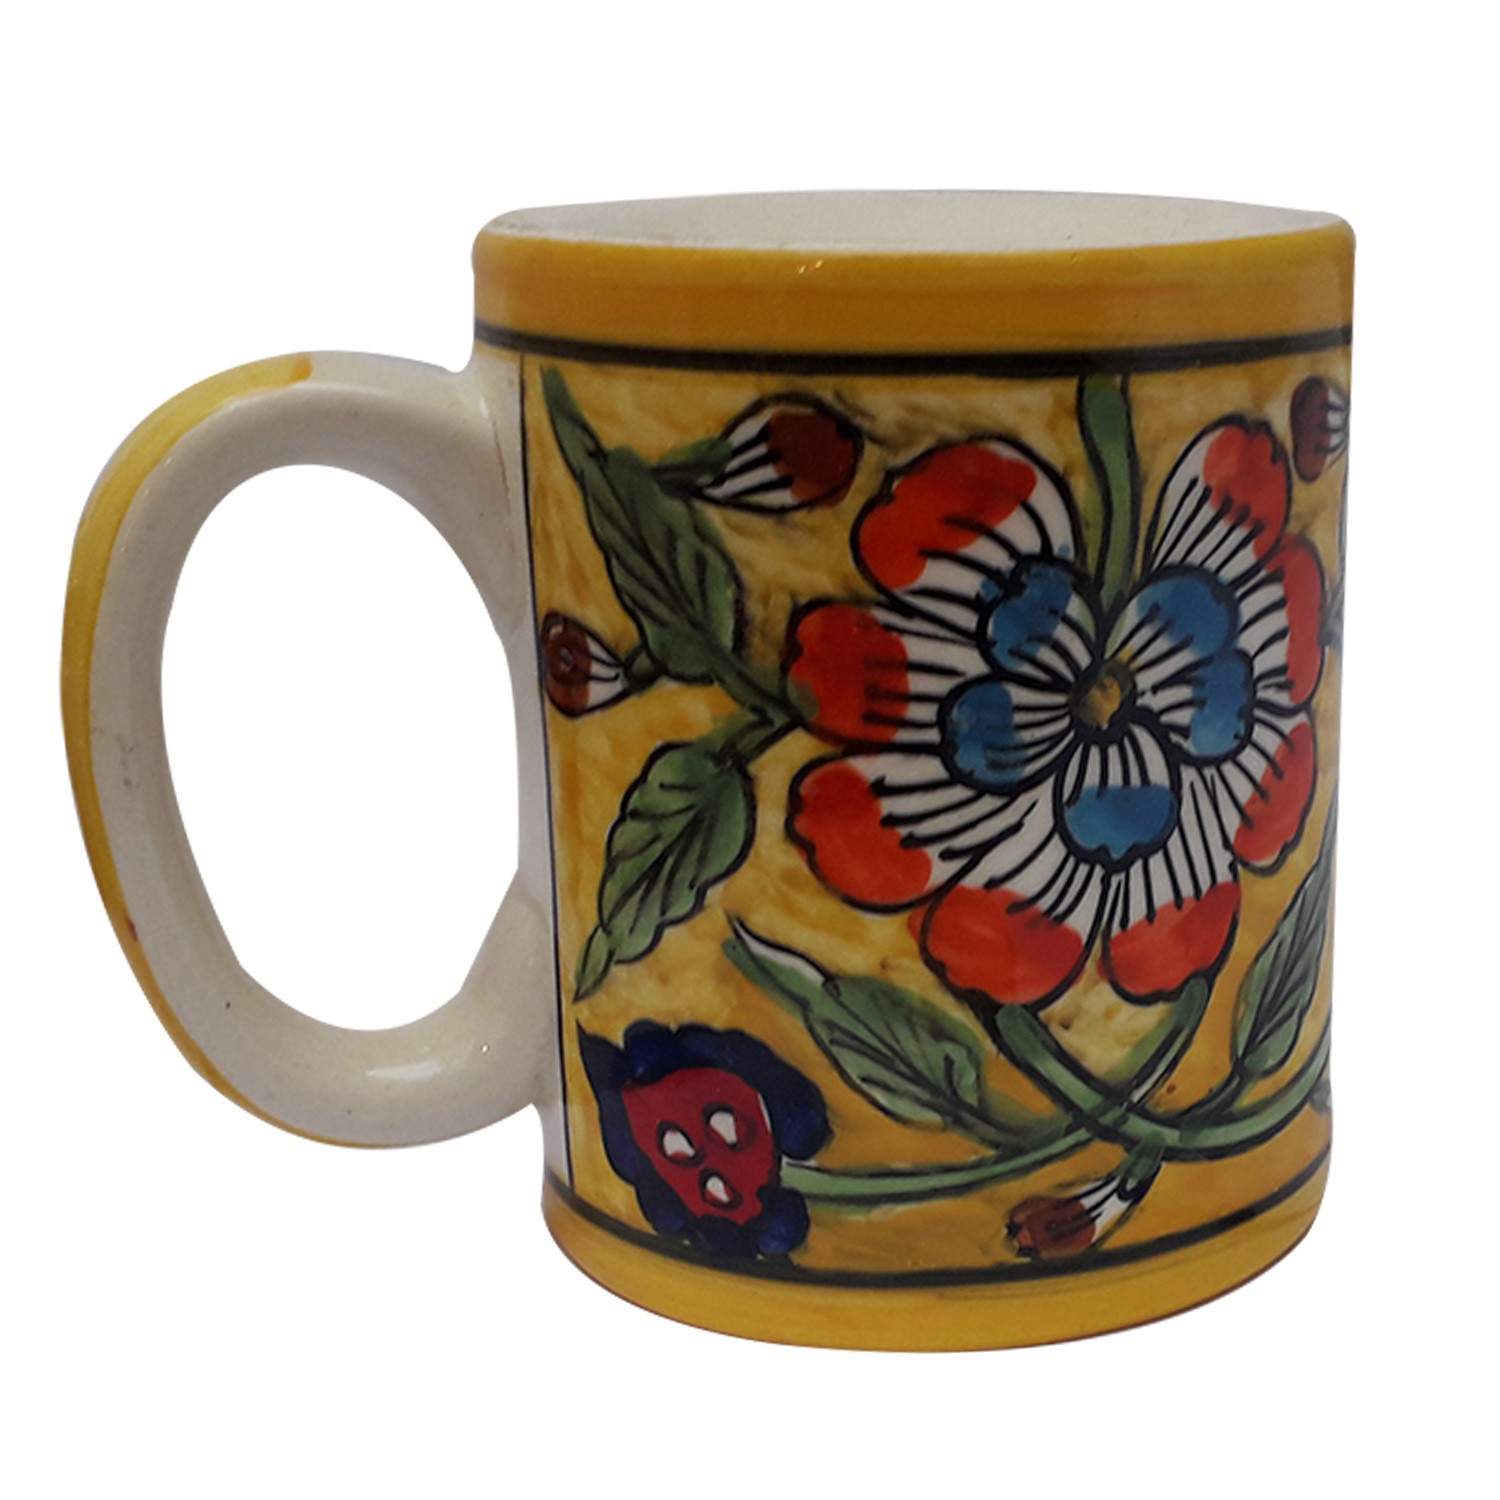 Exclusive Handmade Khurja Pottery Yellow Mugs  Set of 2 by Awarded Artisans